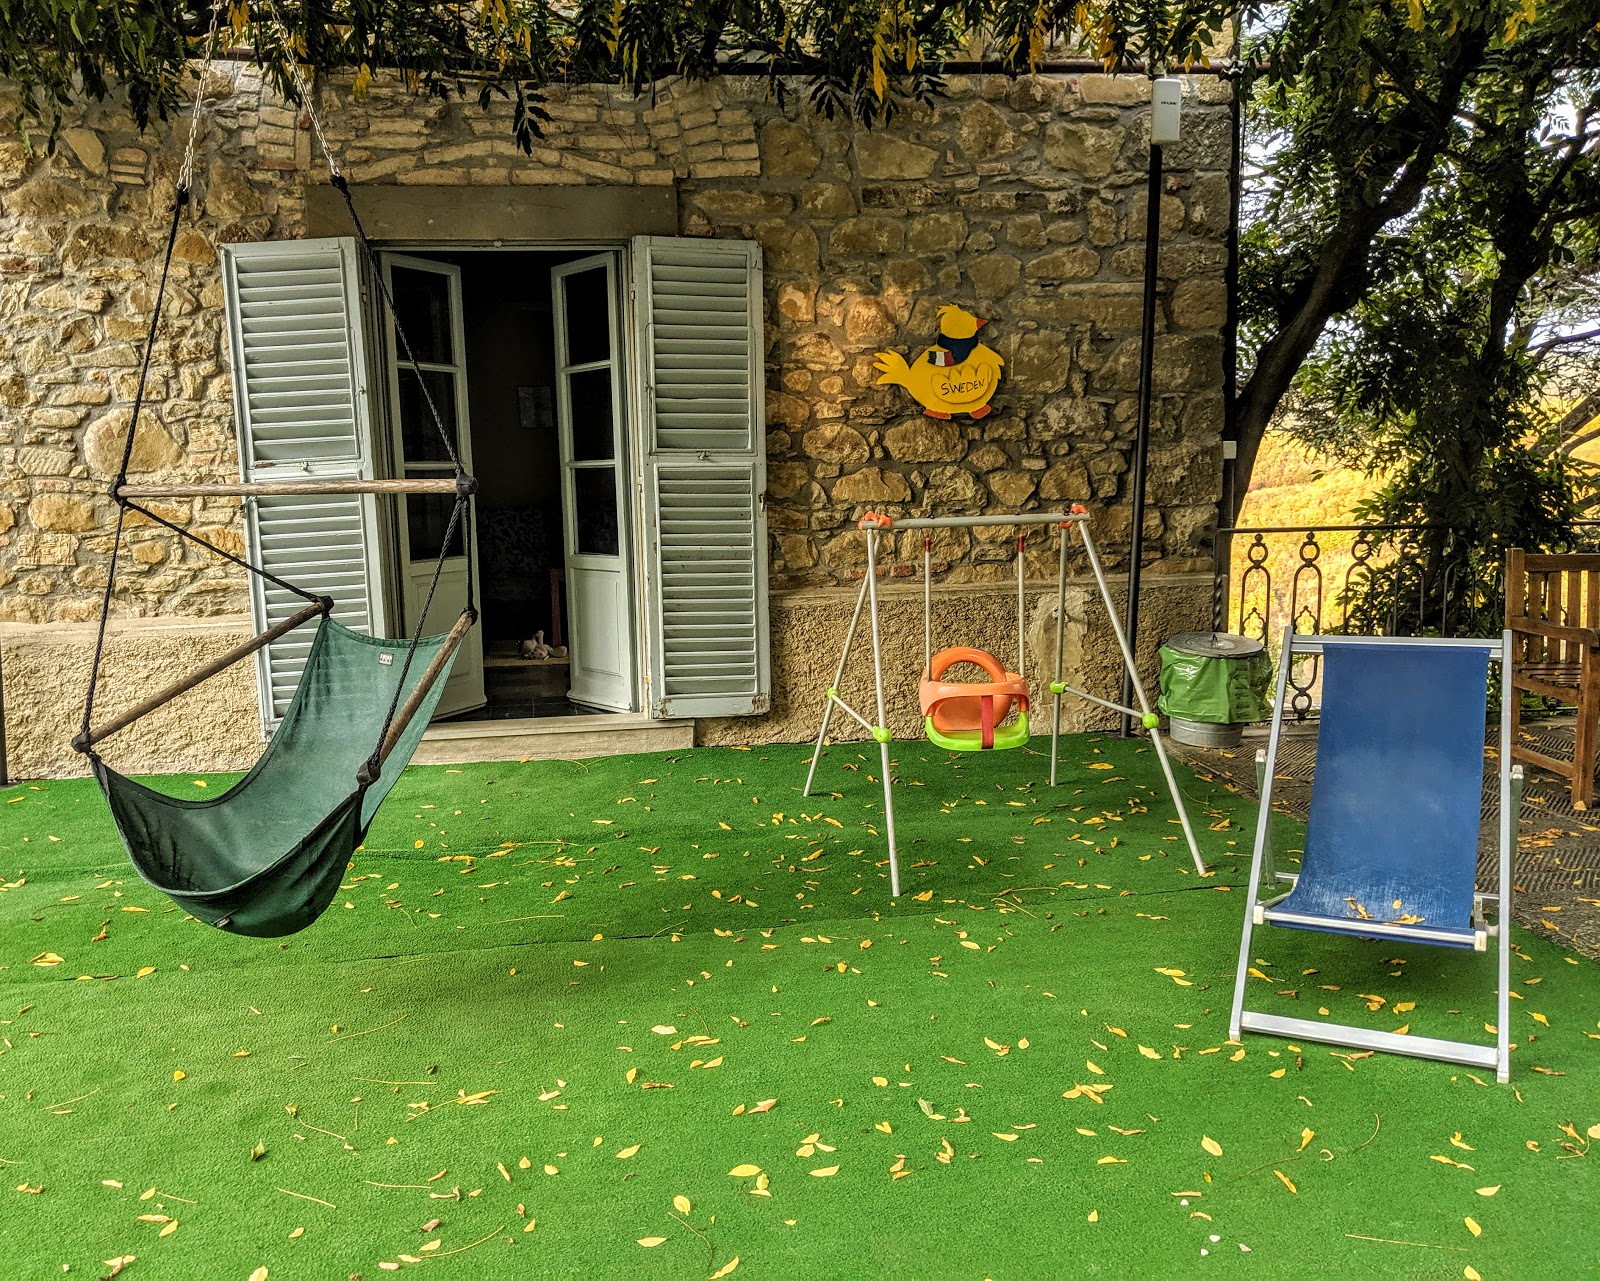 Facilities for Younger Children at Villa Pia